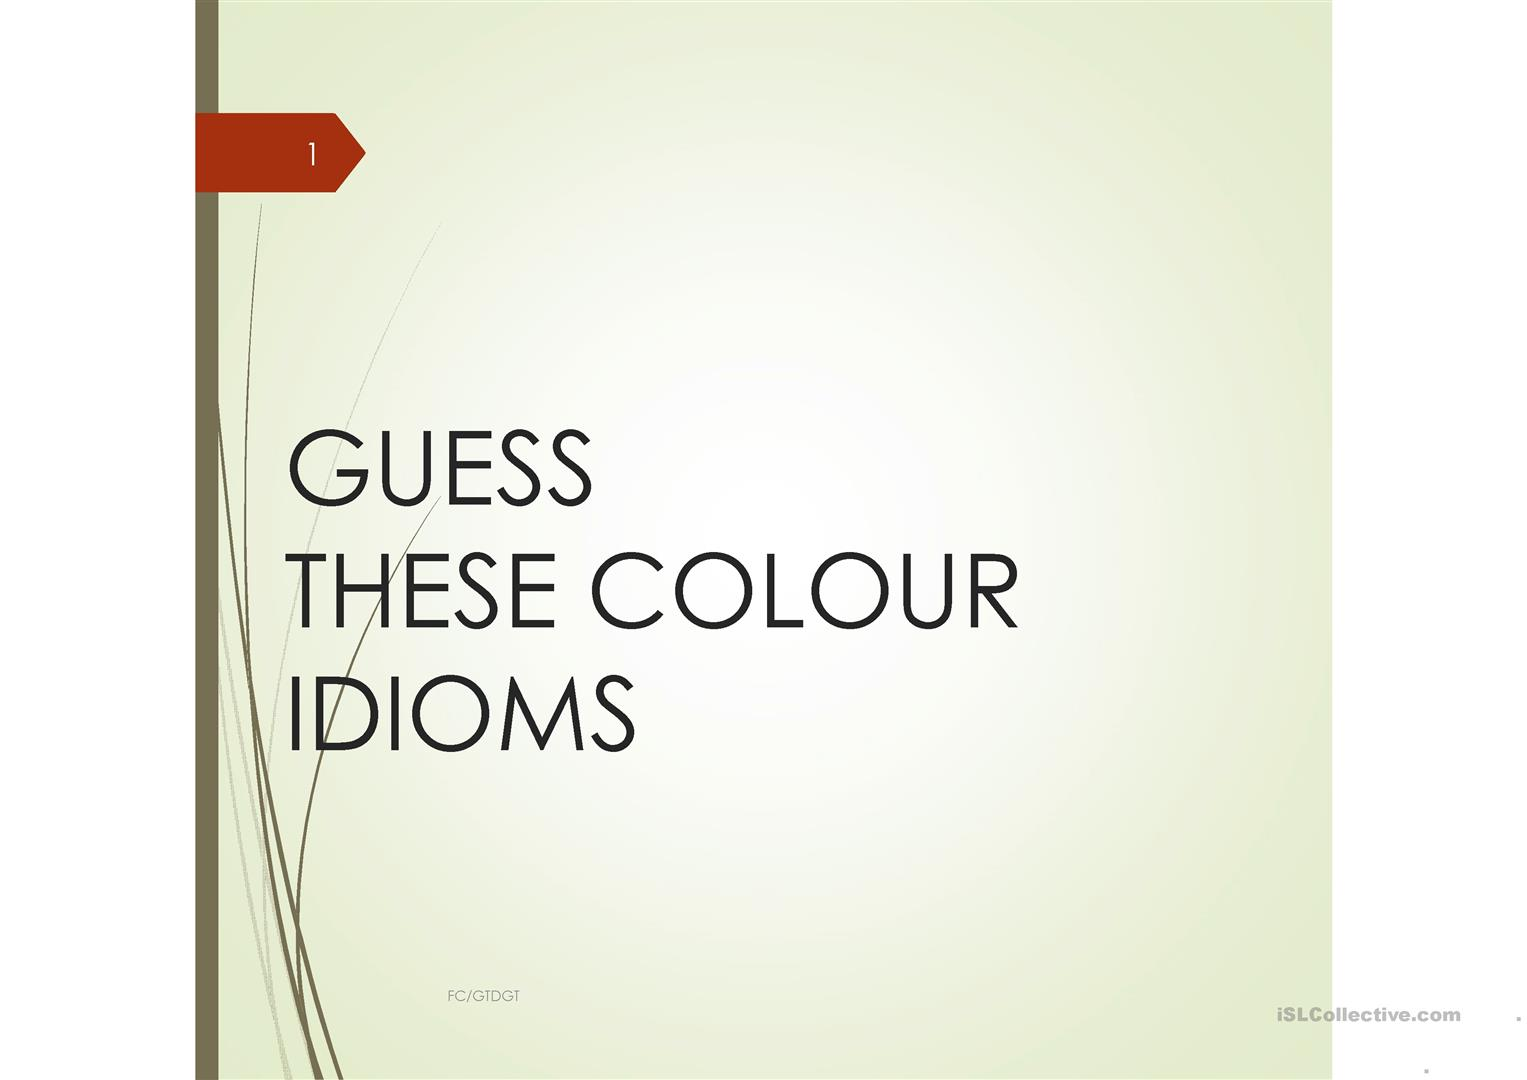 Guess These Colour Idioms Fc Gtdgt